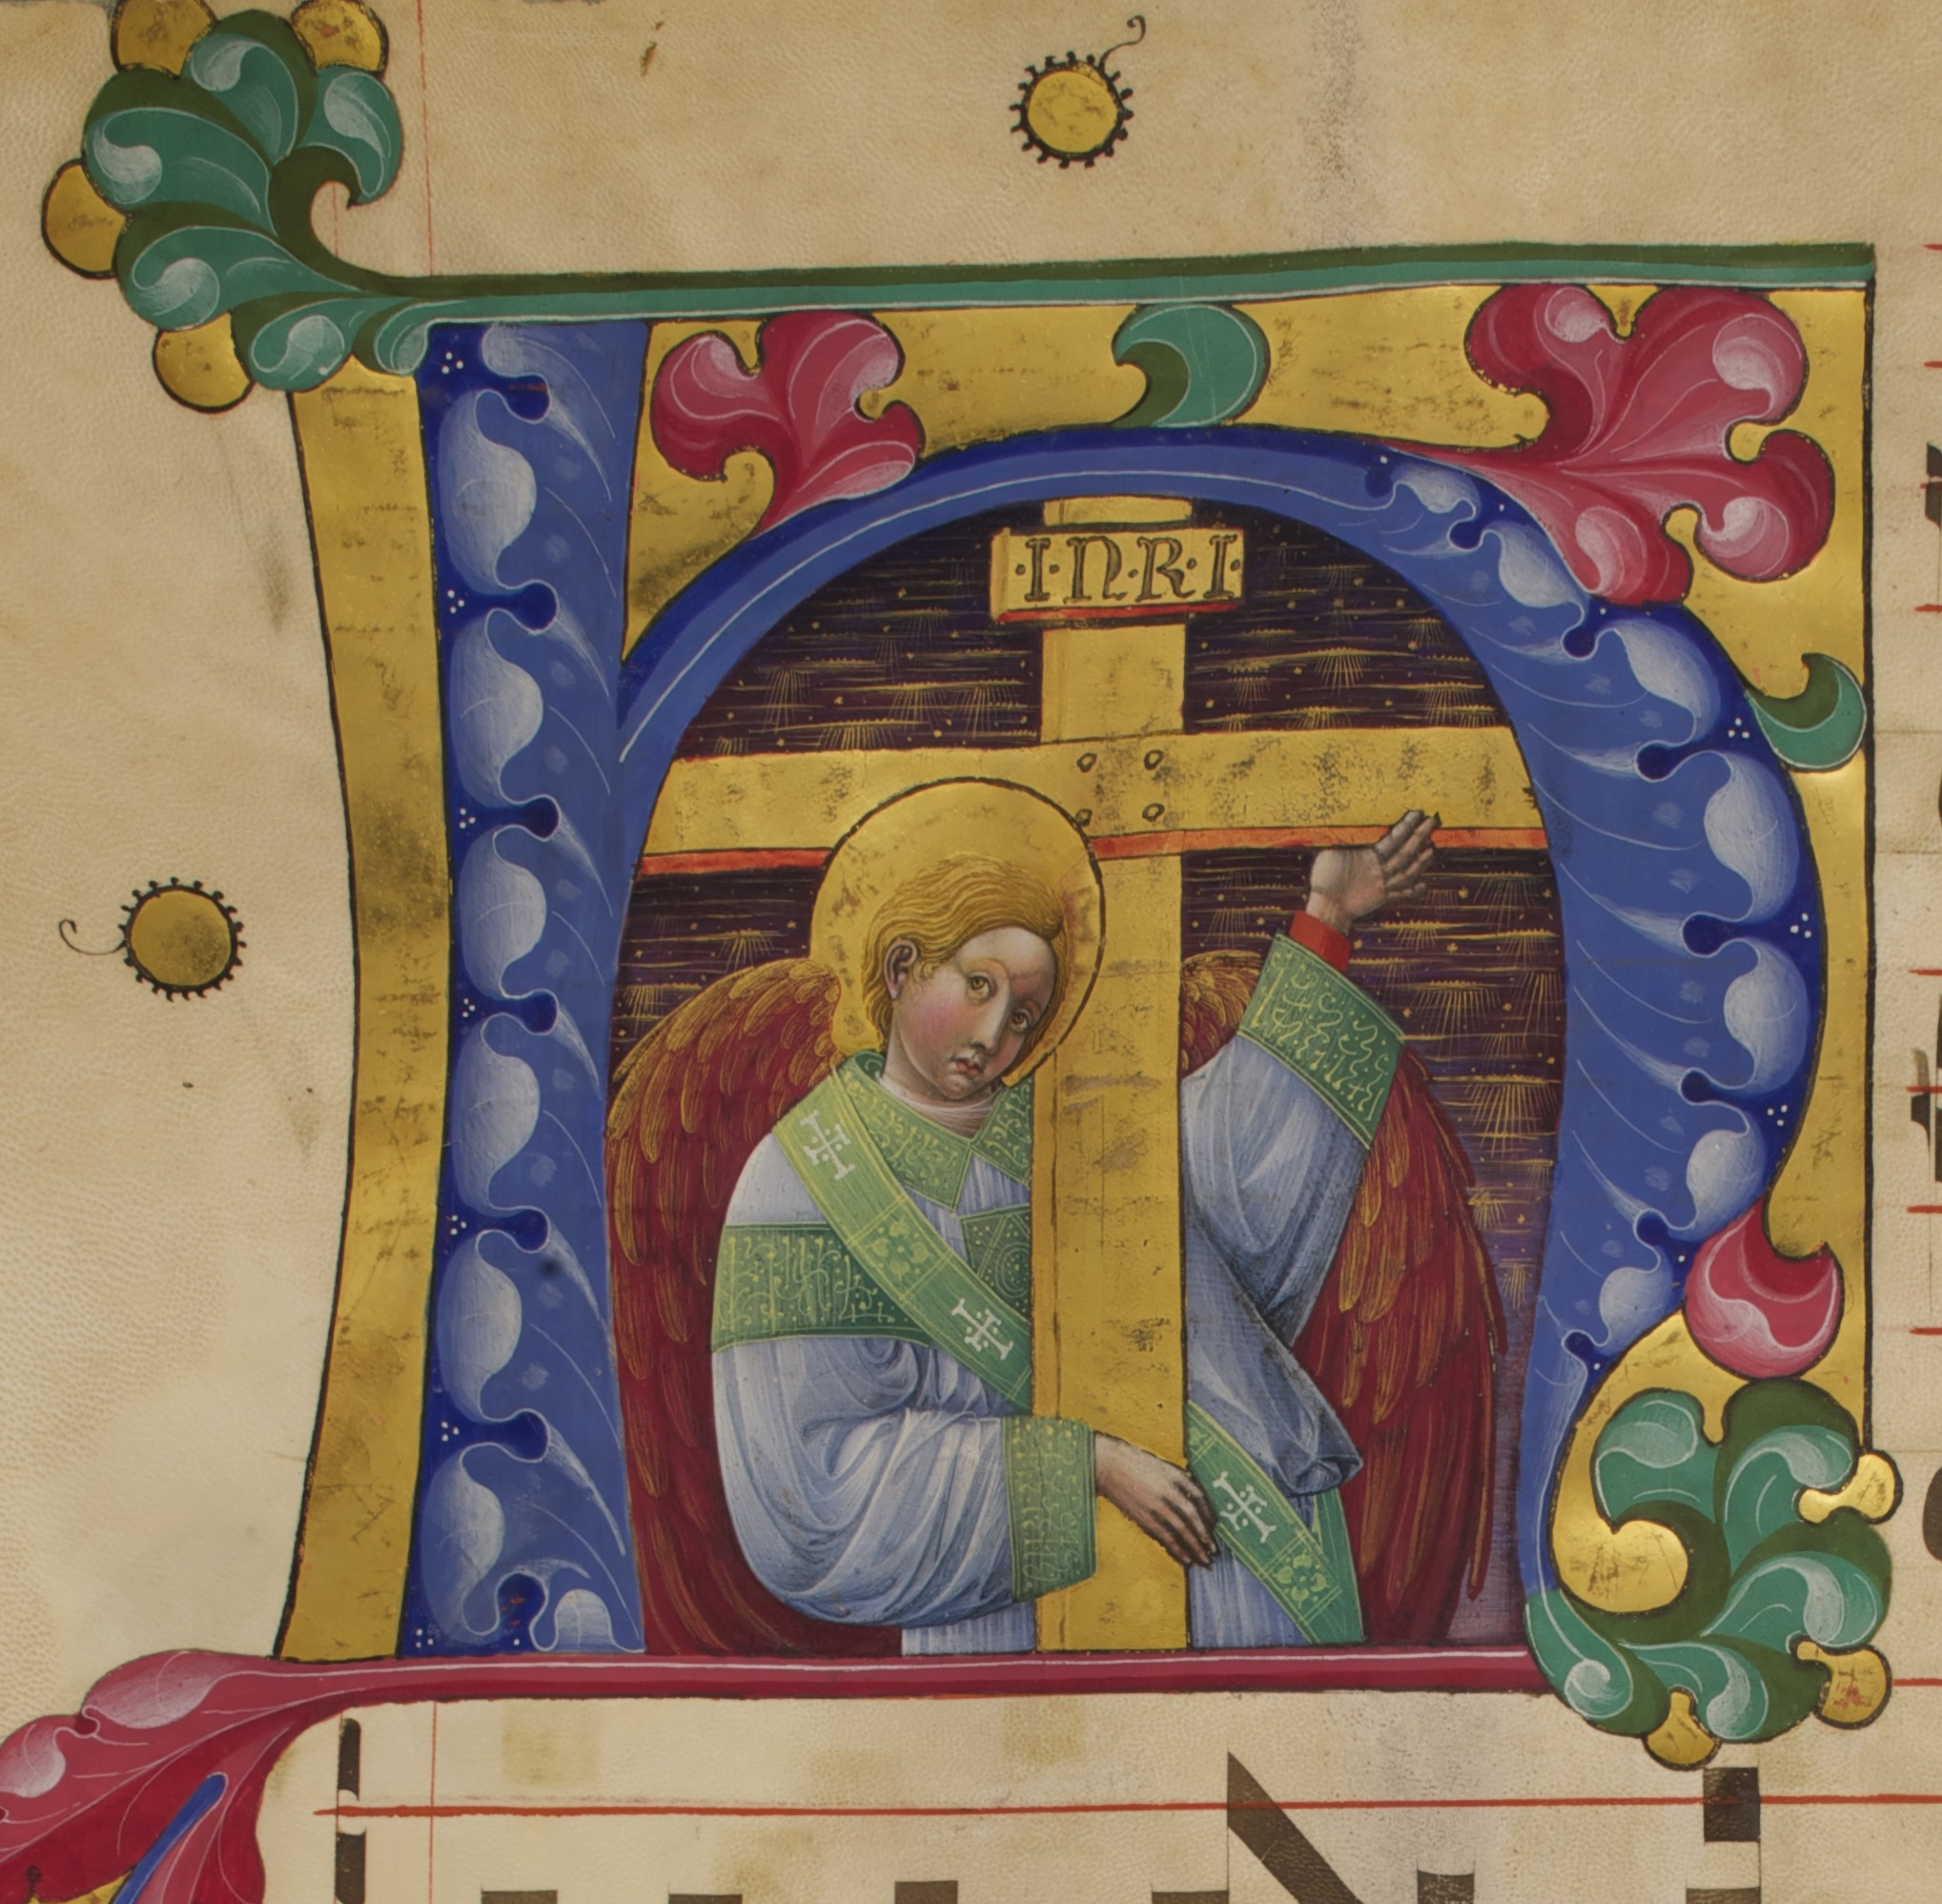 Initial M: The Calling of Saint Andrew from Antiphonal, Belbello da Pavia, about 1467–70. Venice, Abbazia di San Giorgio Maggiore, Antiphonal M, fol. 2v